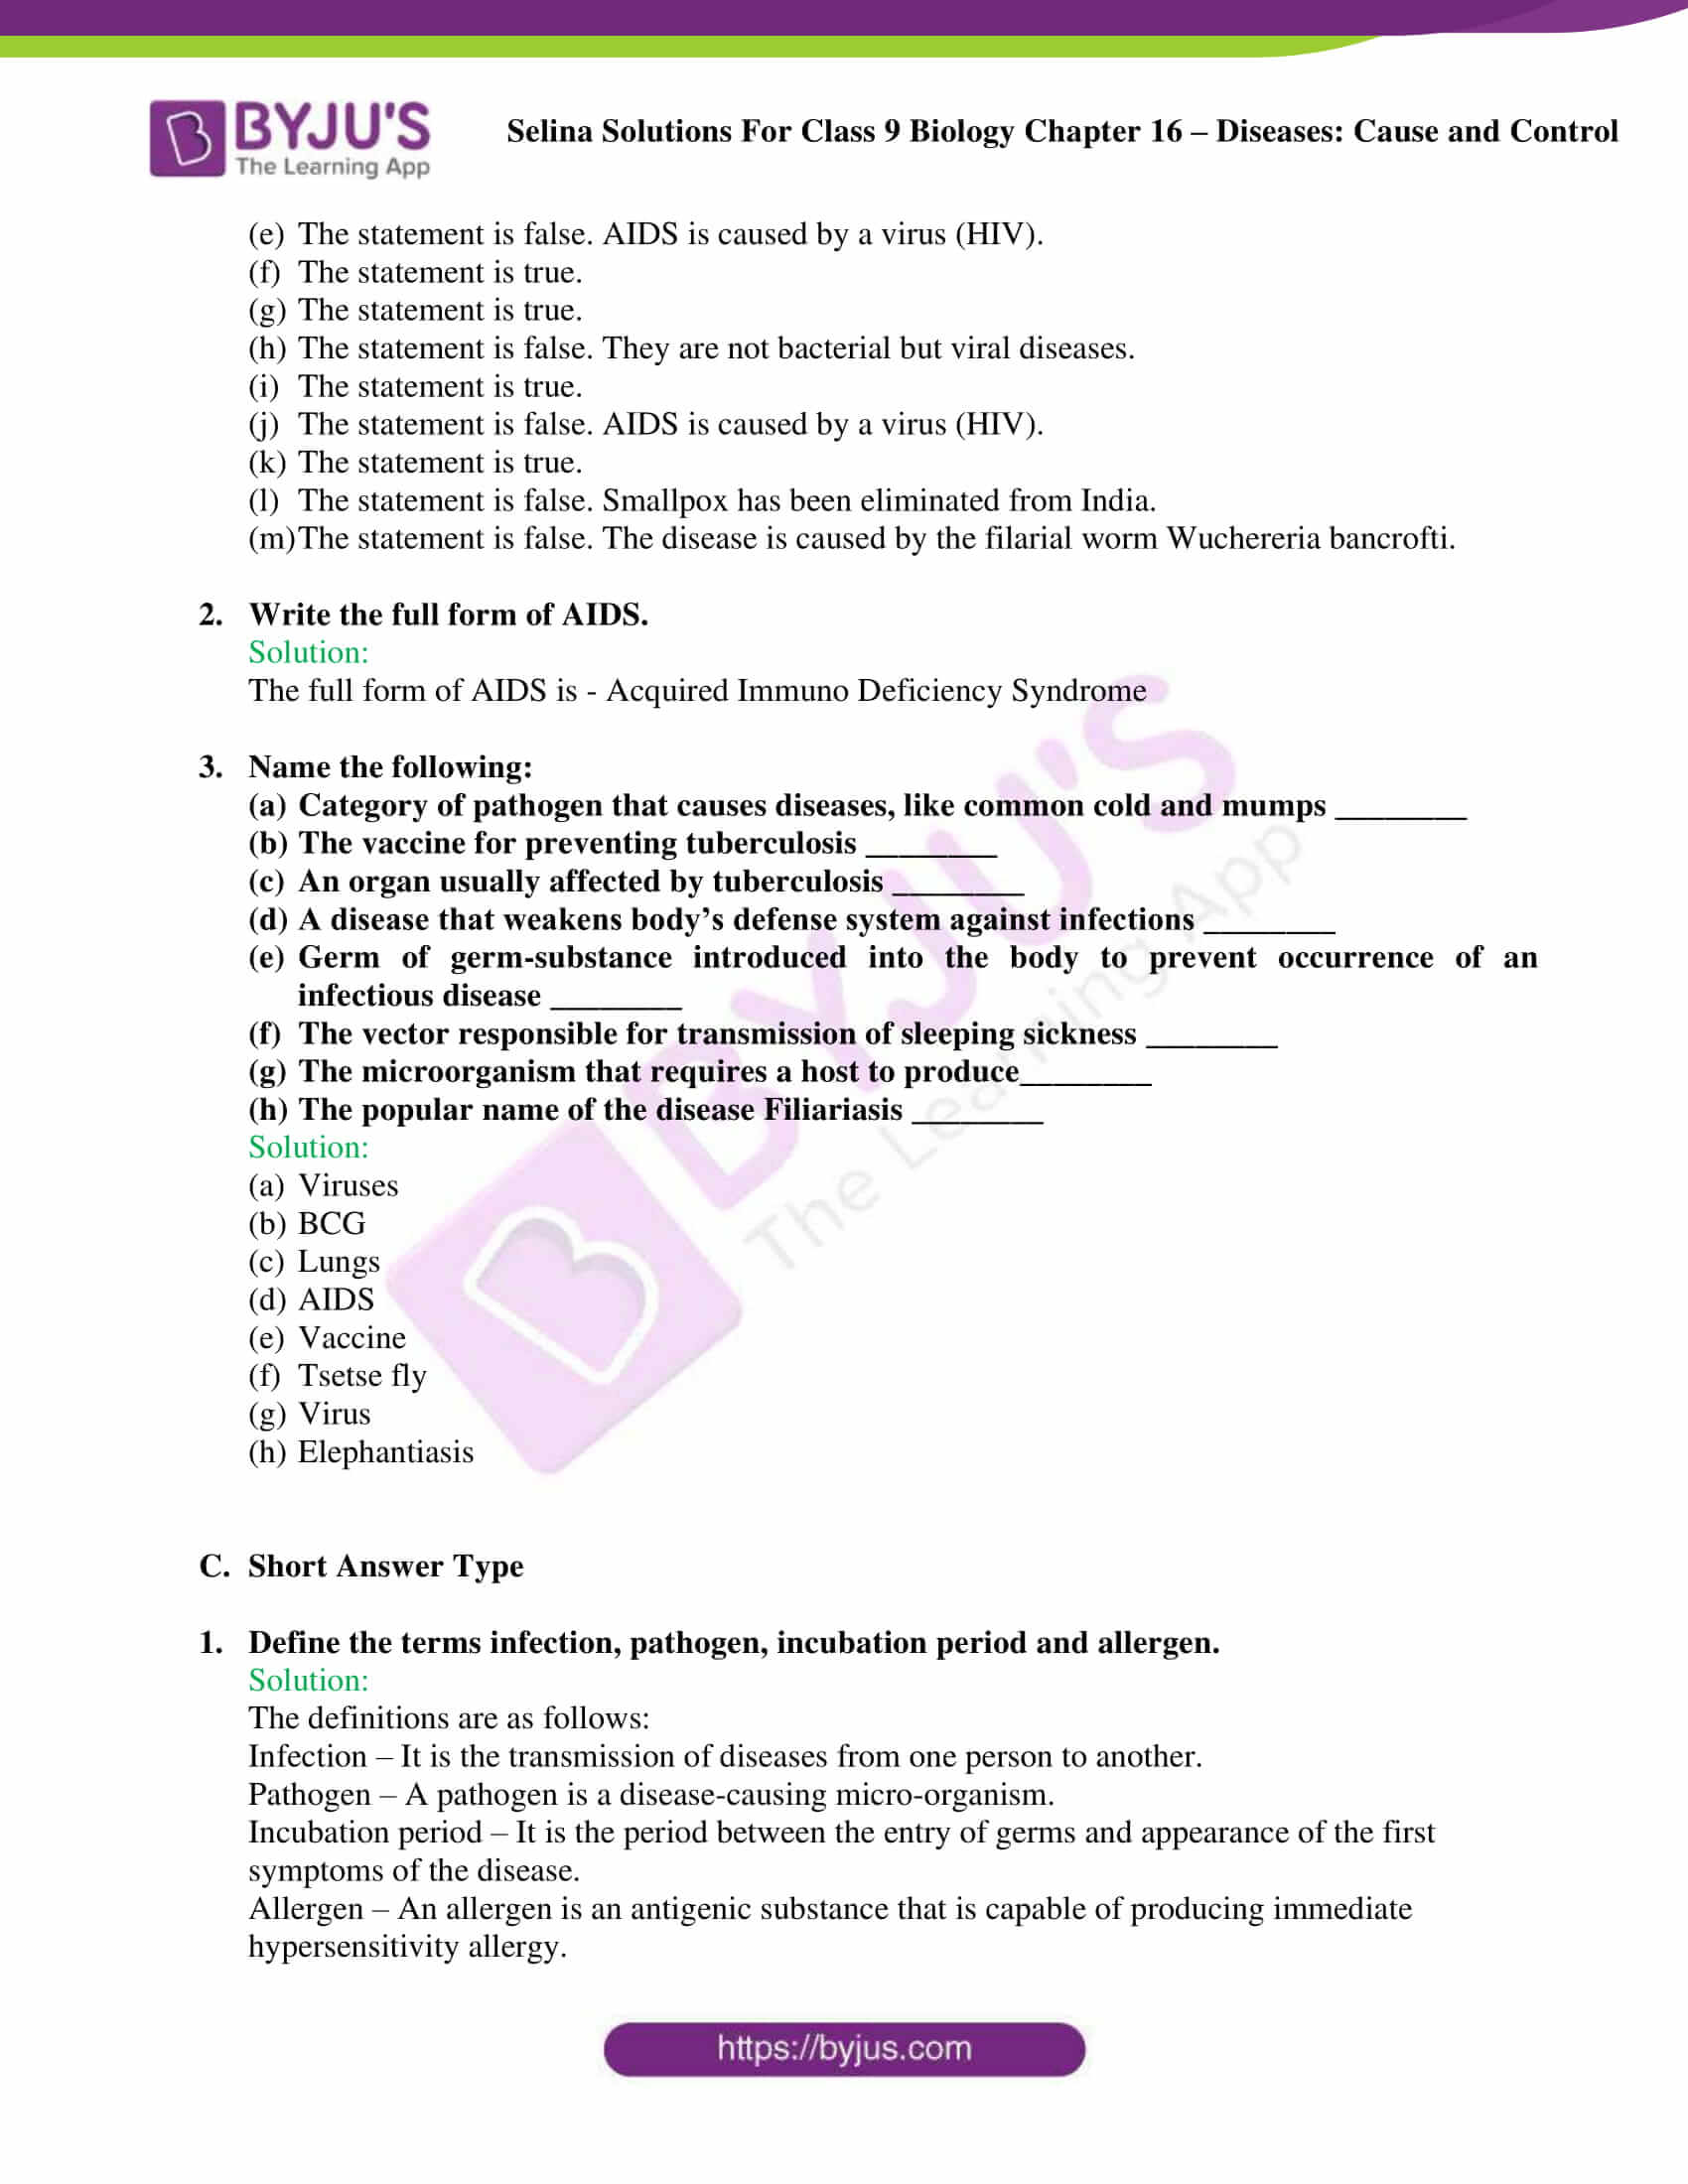 Selina Solutions Class 9 Biology Chapter 16 part 4